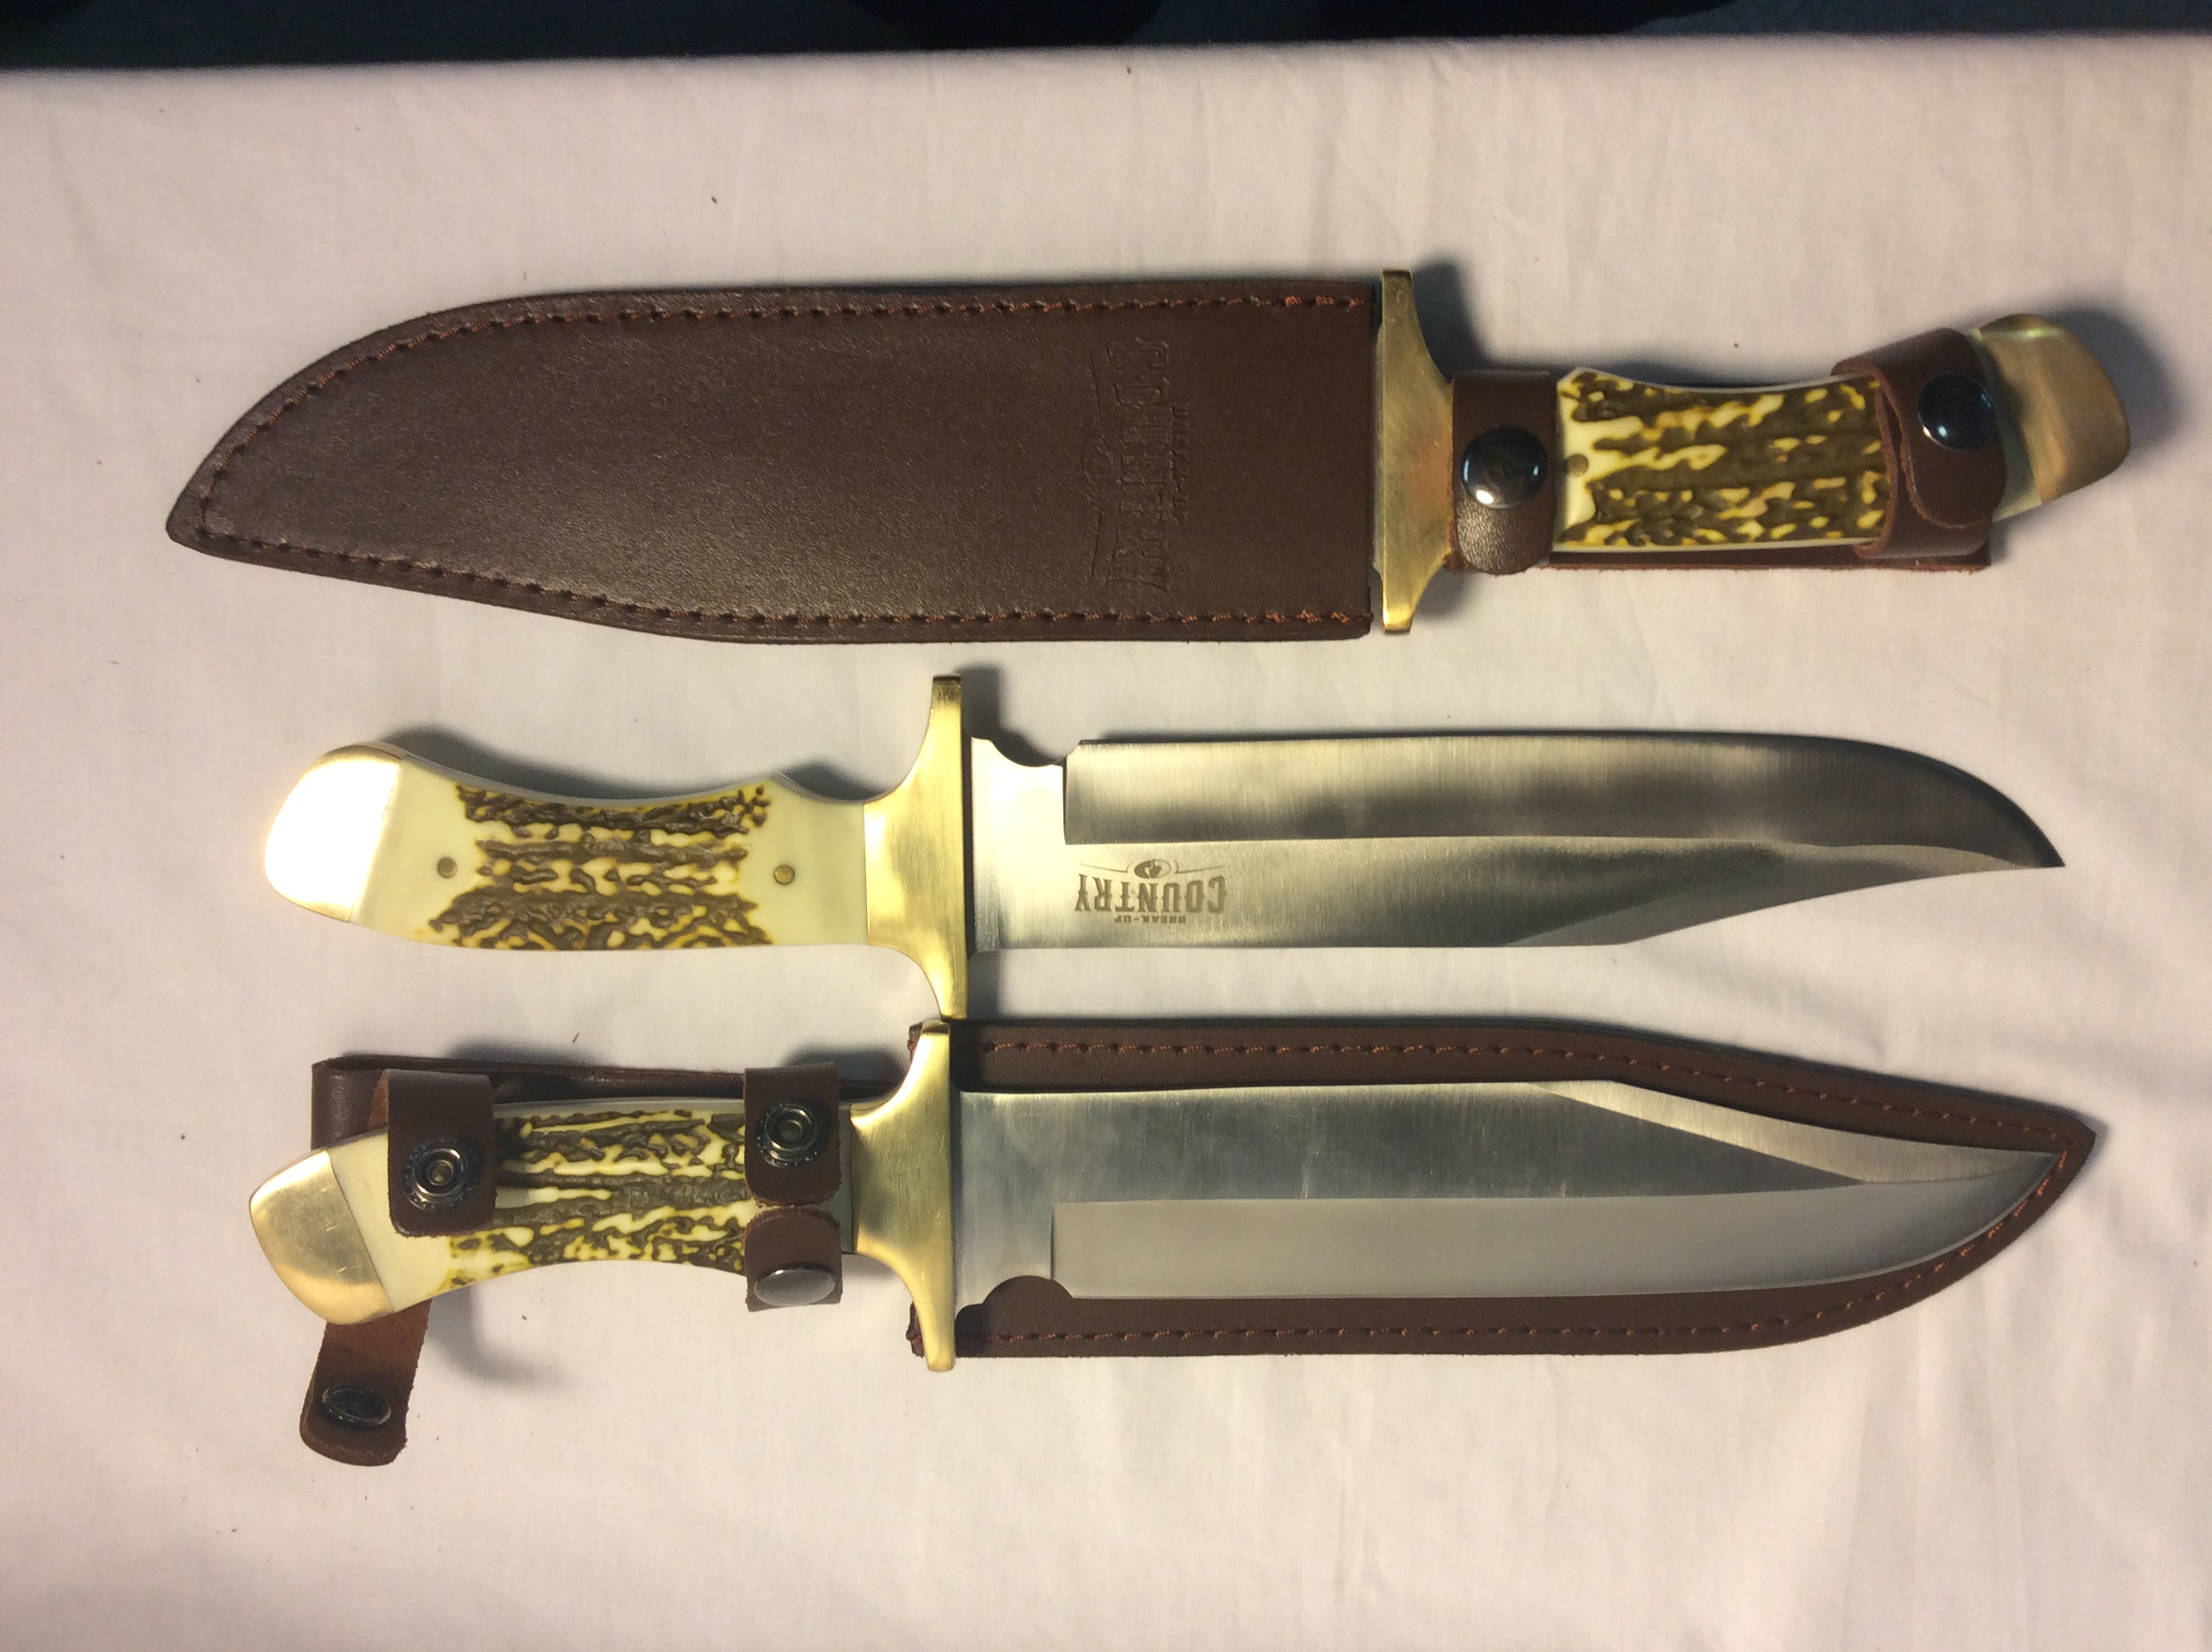 Bowie Knife; with brass guard